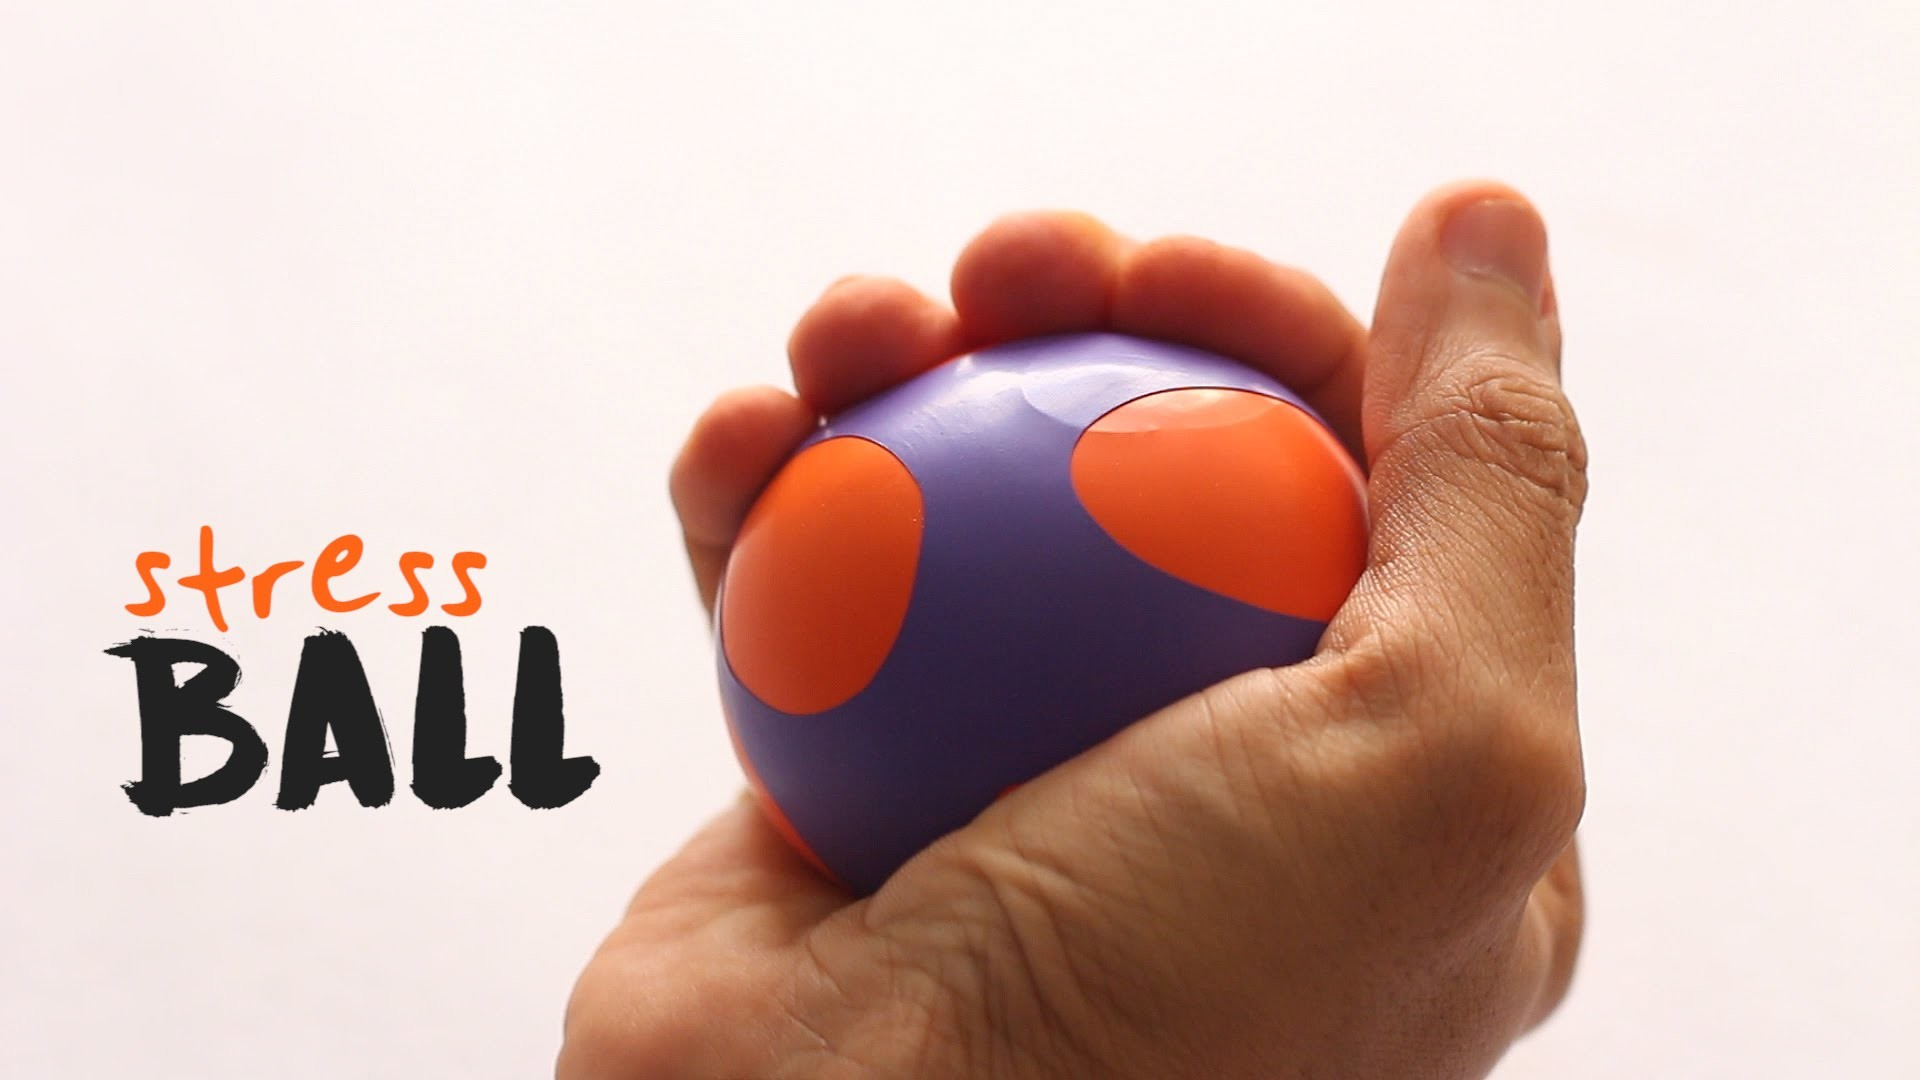 DIY : Stress Ball - Easy arts and crafts